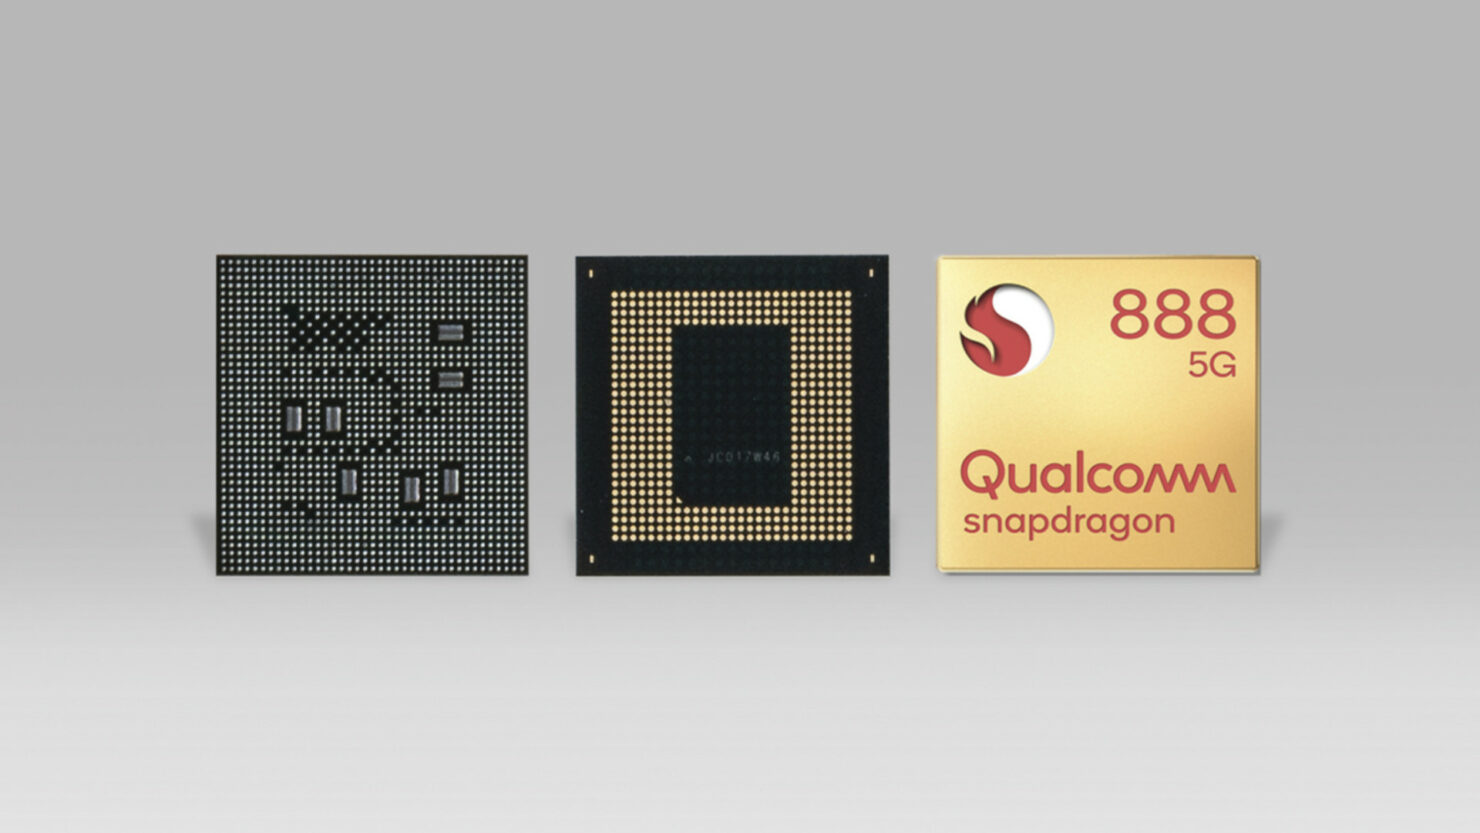 Snapdragon 888 Plus to Offer Modest Clock Speed Increases Over Regular Snapdragon 888, According to Benchmark Leak